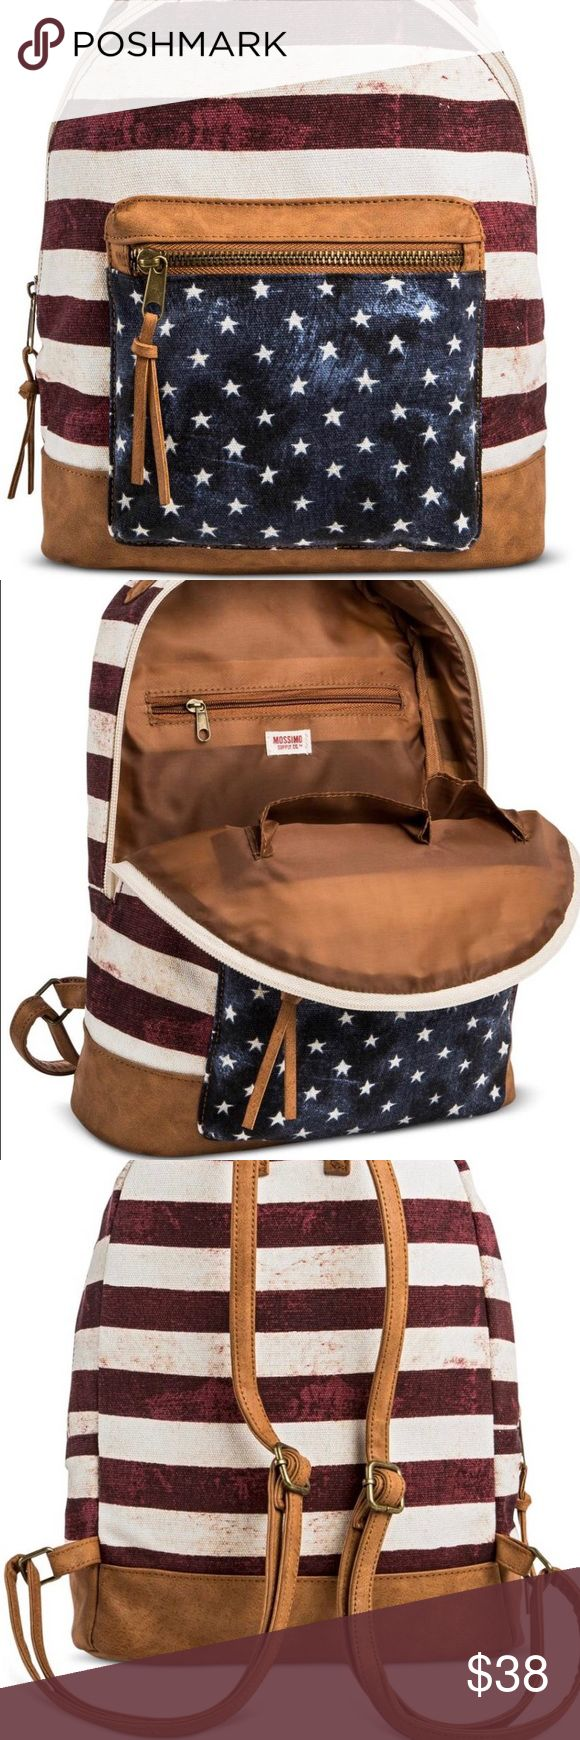 Americana Mini Pack - Mossimo Supply Co.™ shop all Americana Mini Pack - Mossimo Supply Co.™ shop all Mossimo Supply Co. Mossimo Supply Co. Bags Backpacks